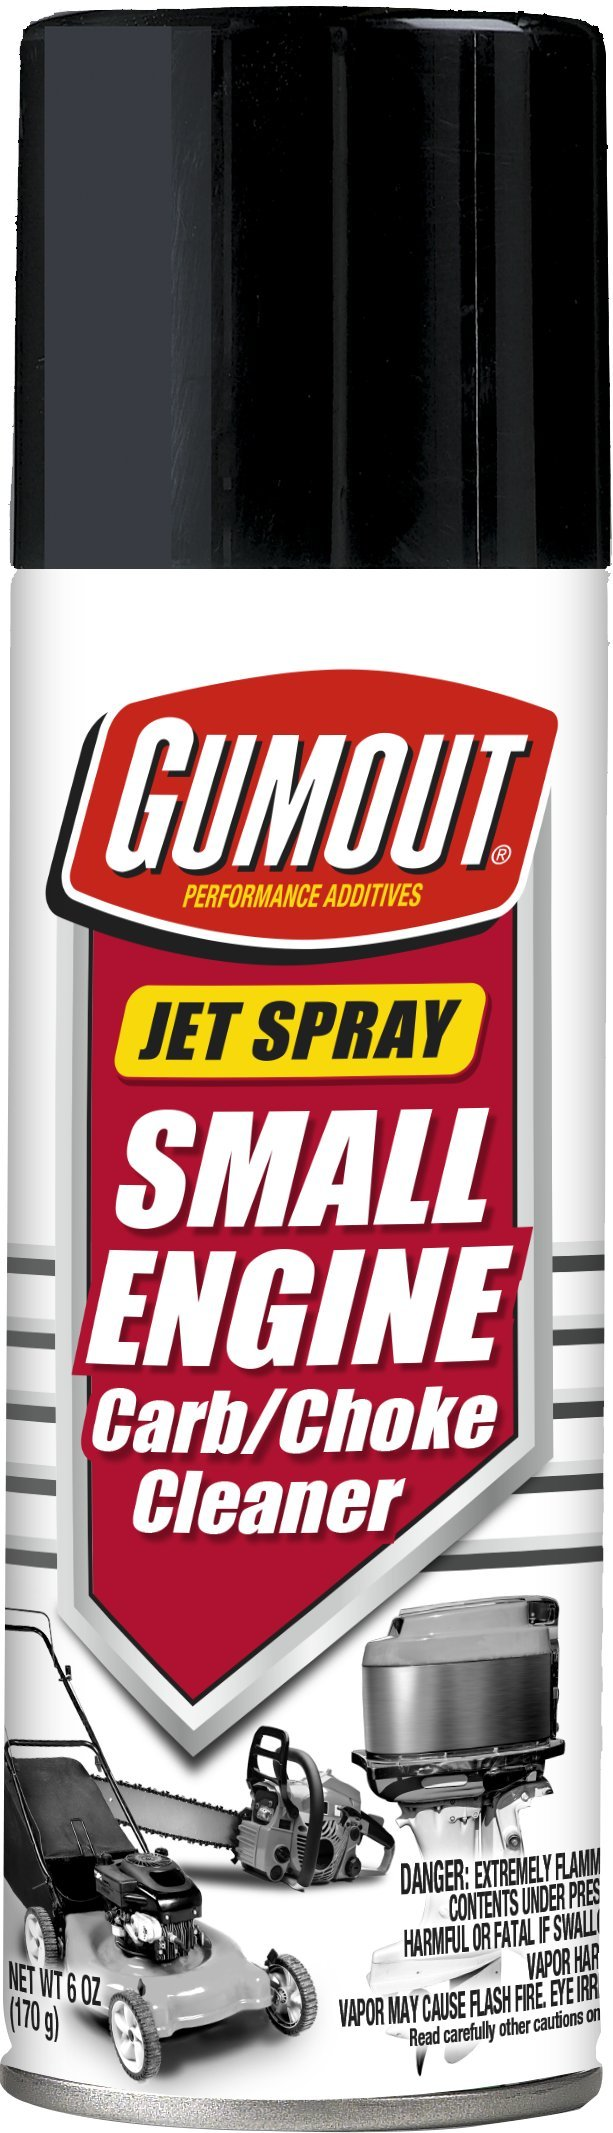 Gumout 800002241-12PK Small Engine Carb and Choke Cleaner, 6 oz. (Pack of 12)